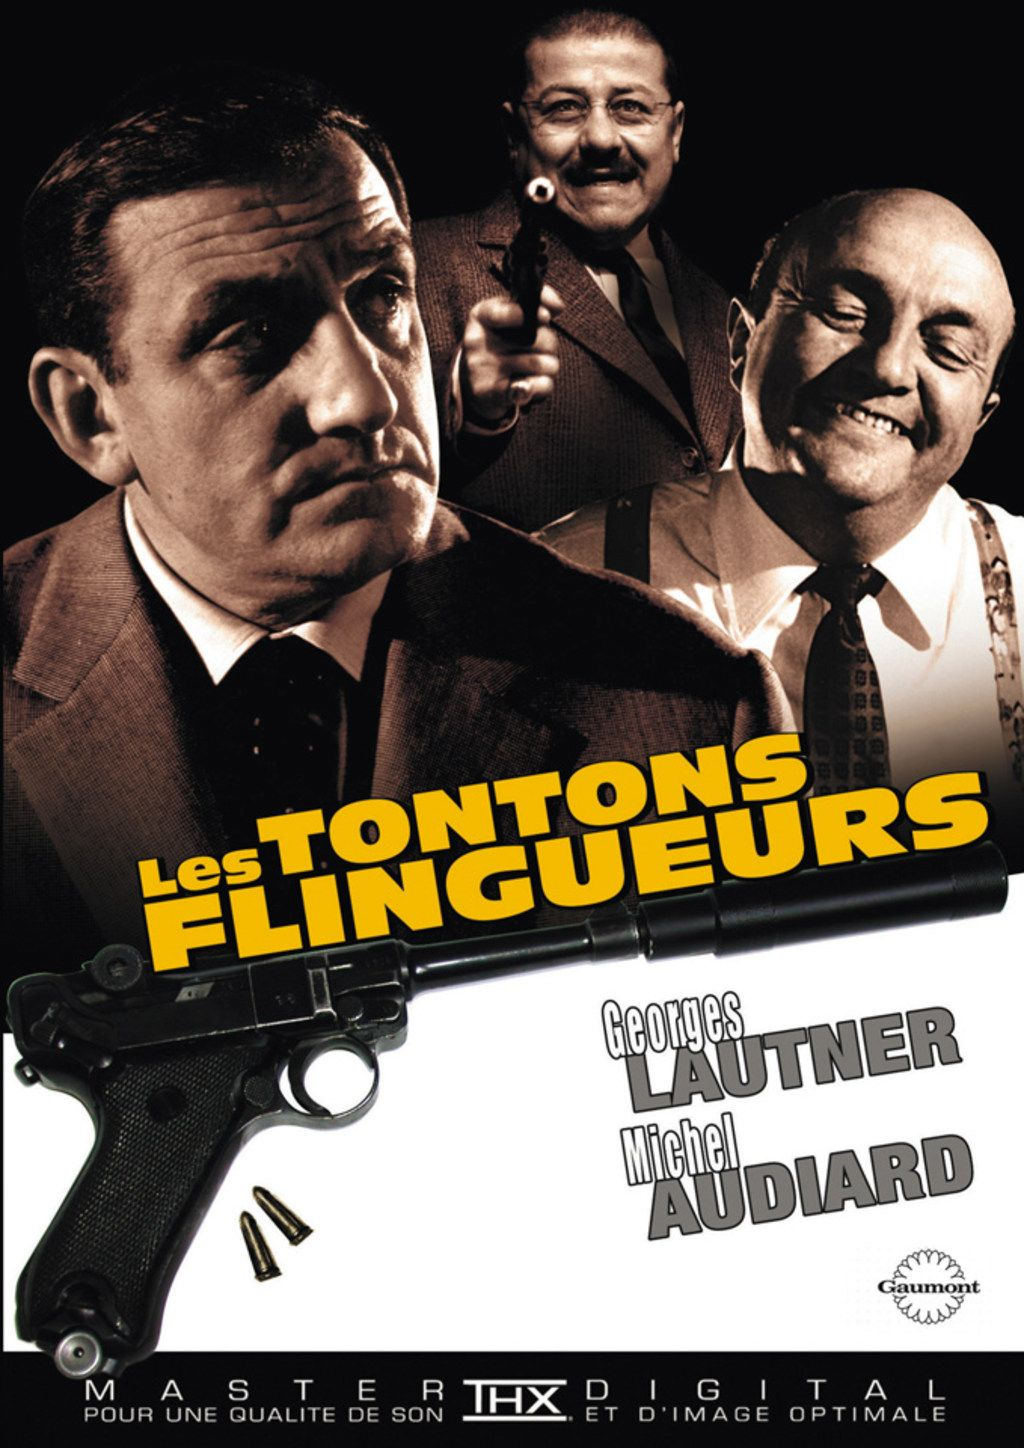 affiche du film les tontons flingueurs pinterest les film film et affiches. Black Bedroom Furniture Sets. Home Design Ideas